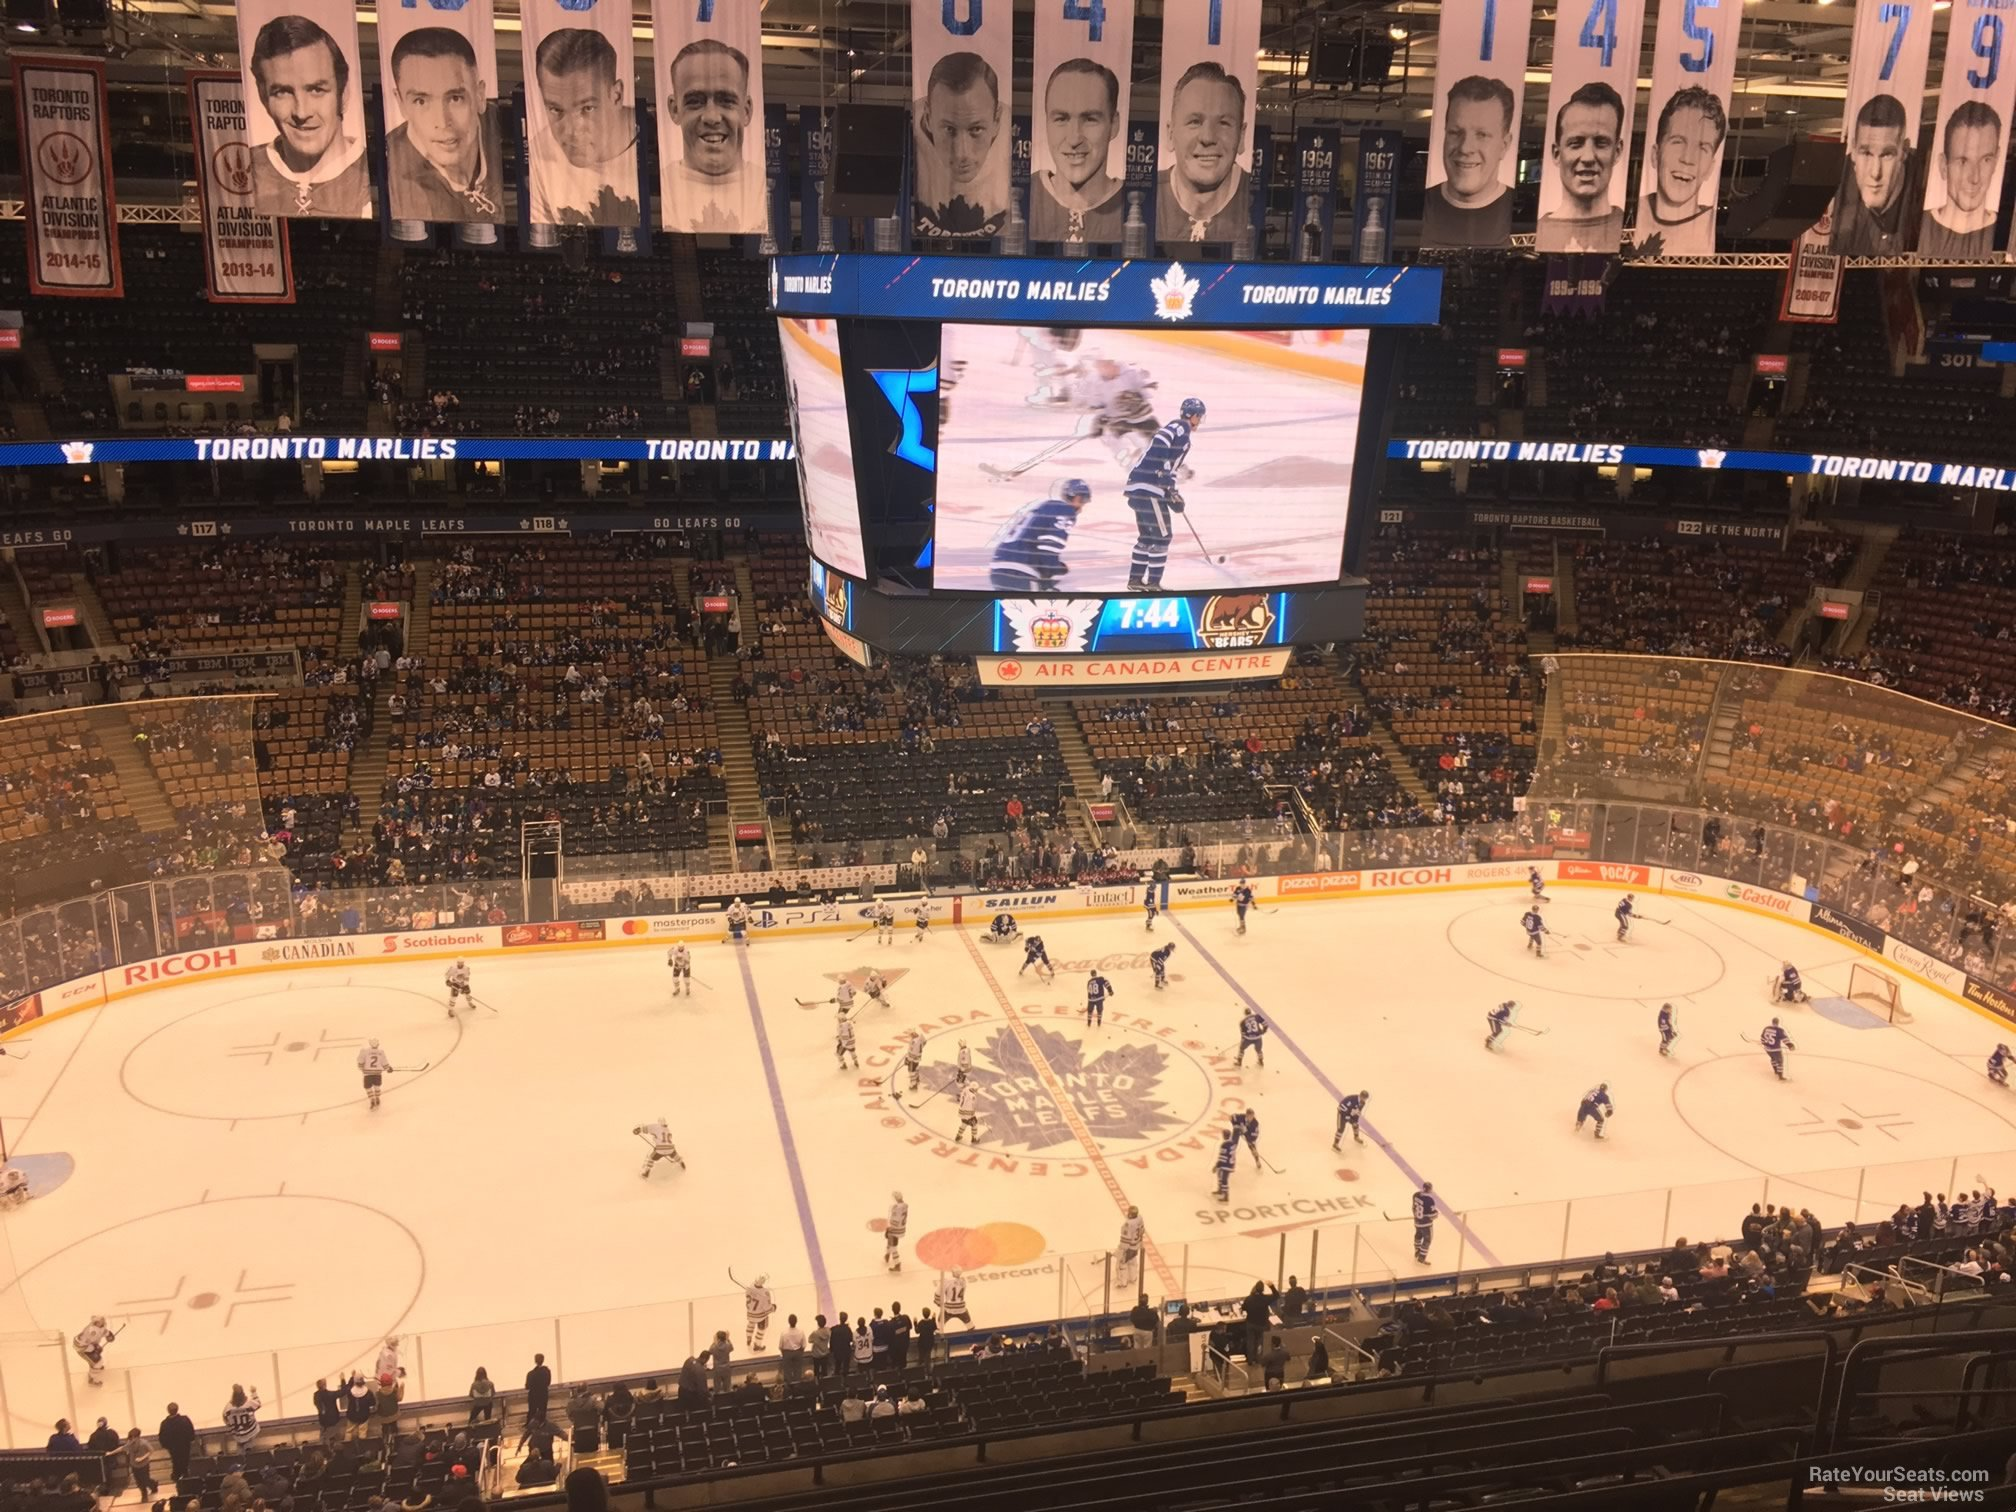 Toronto Maple Leafs Seat View for Scotiabank Arena Section 310, Row 10